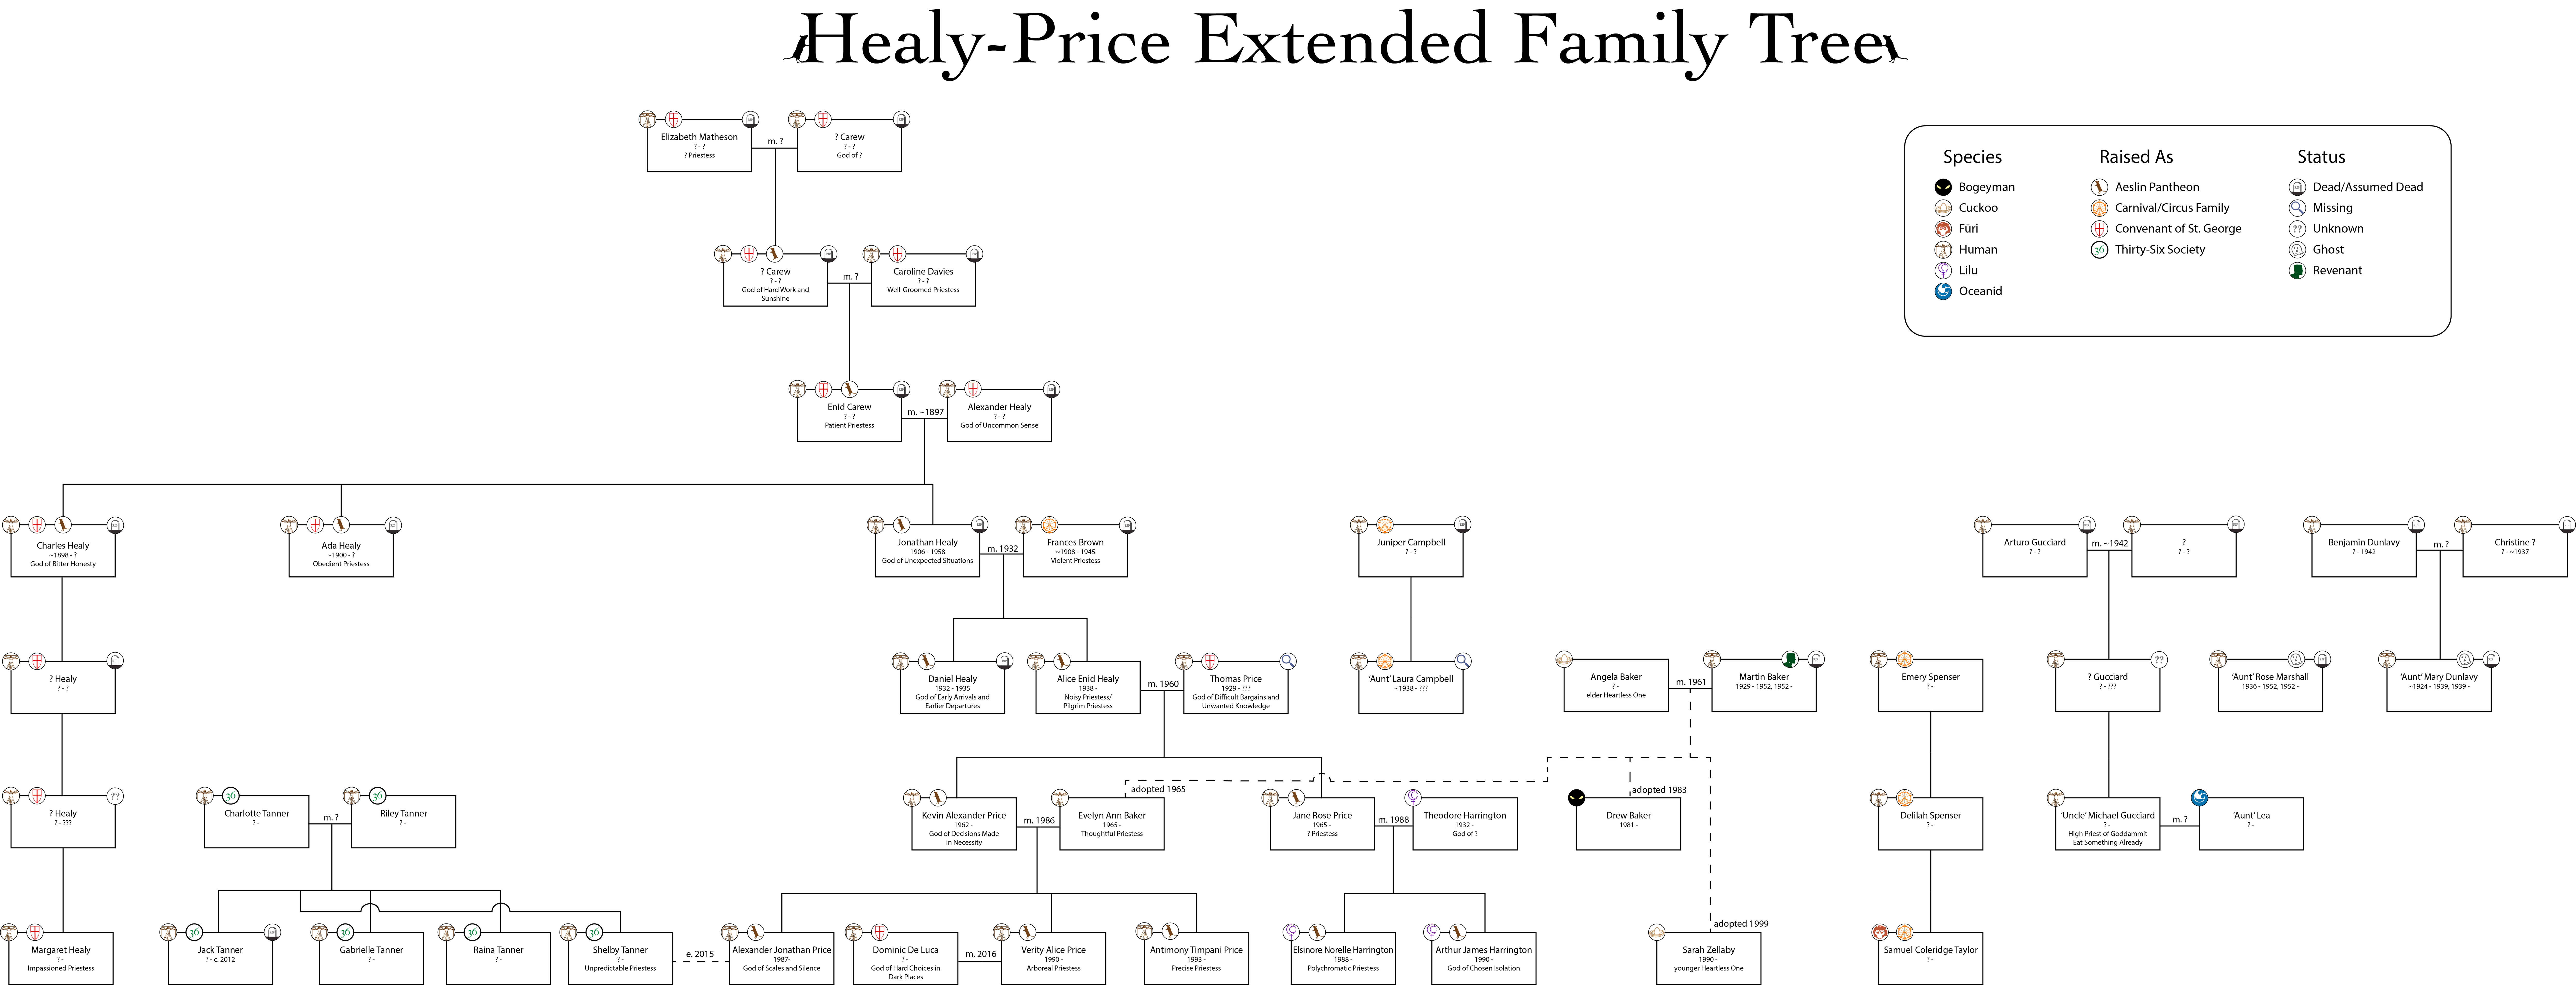 Healy-Price Extended Family Tree